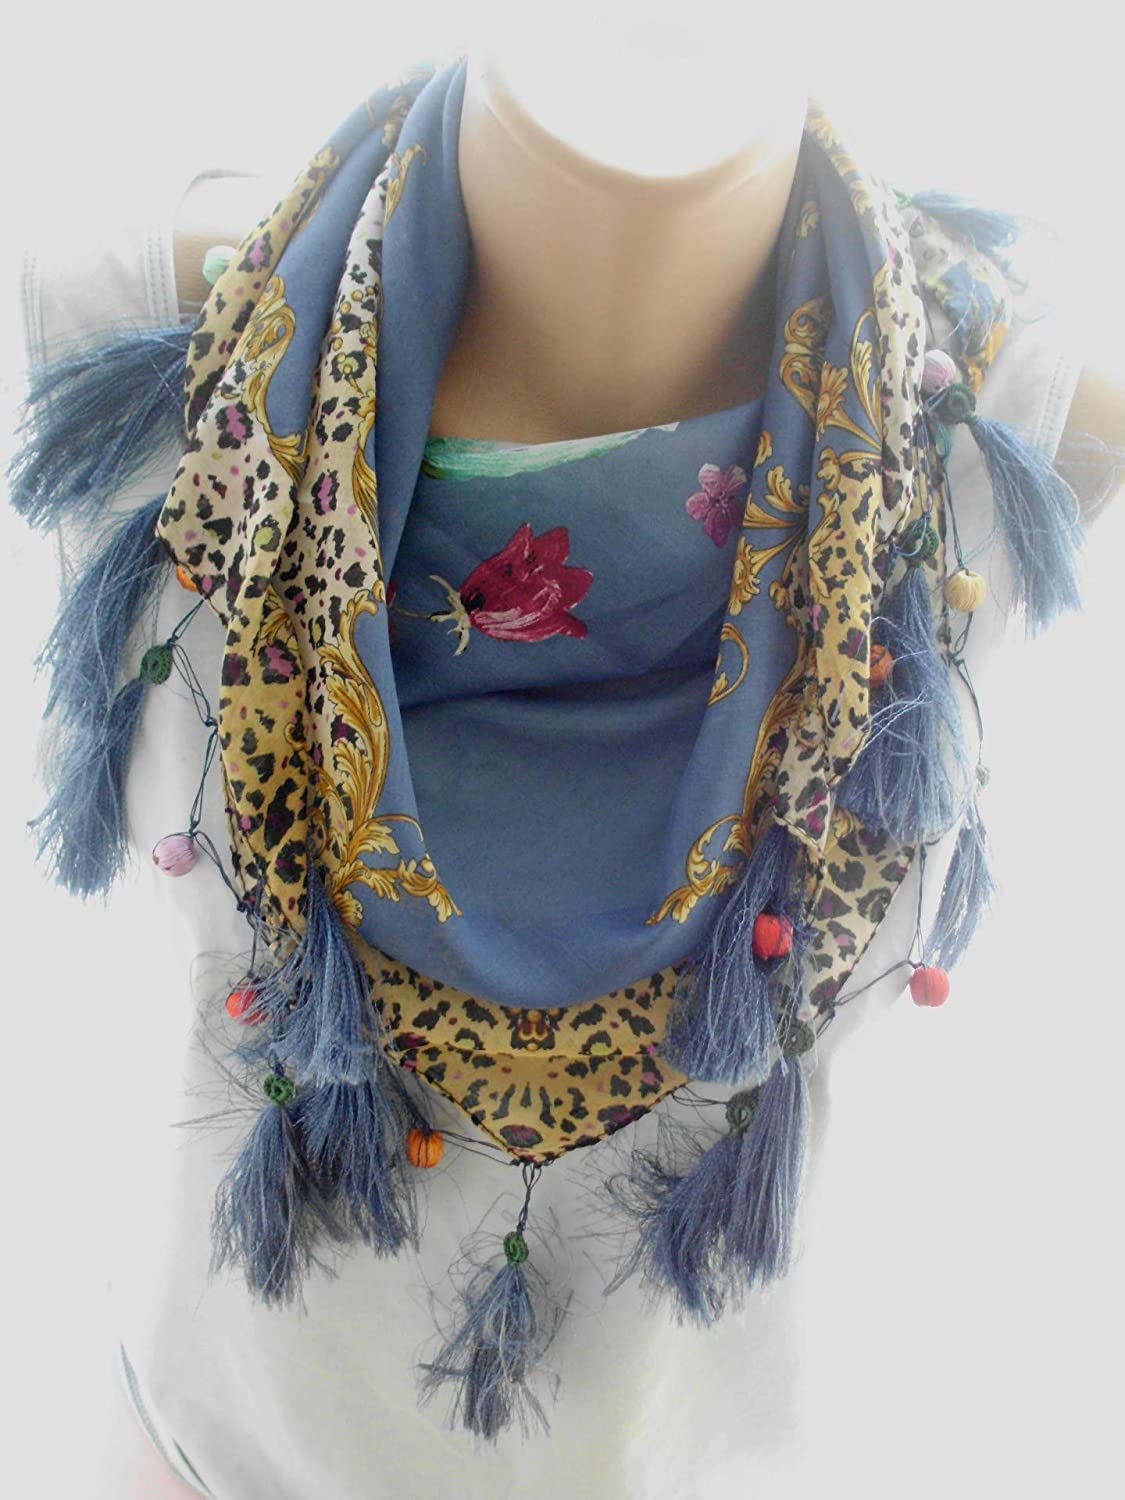 Fringed white Scarf Women Cotton Lace Floral Boho 40% OFF Clearance SALE! Limited time! Cheap Sale